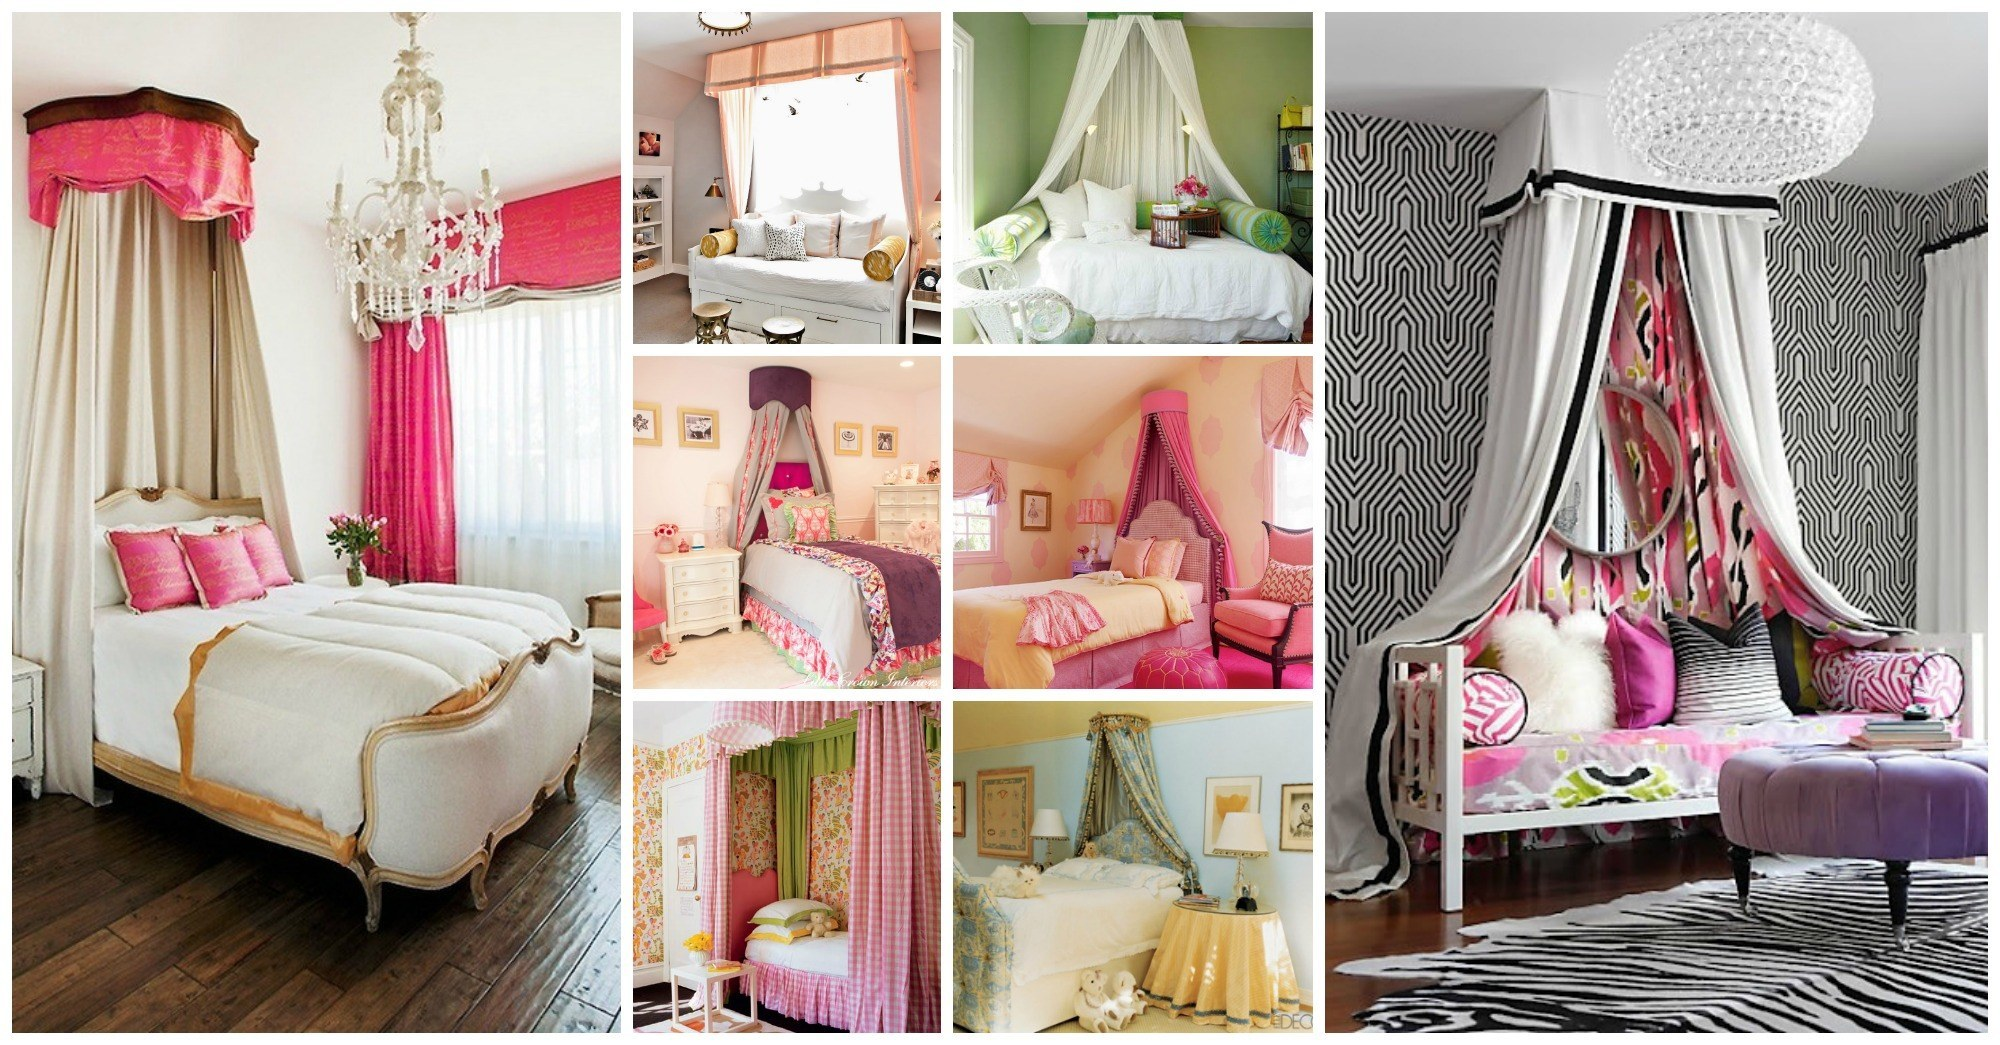 Lovable Canopy Beds For Your Little Princess